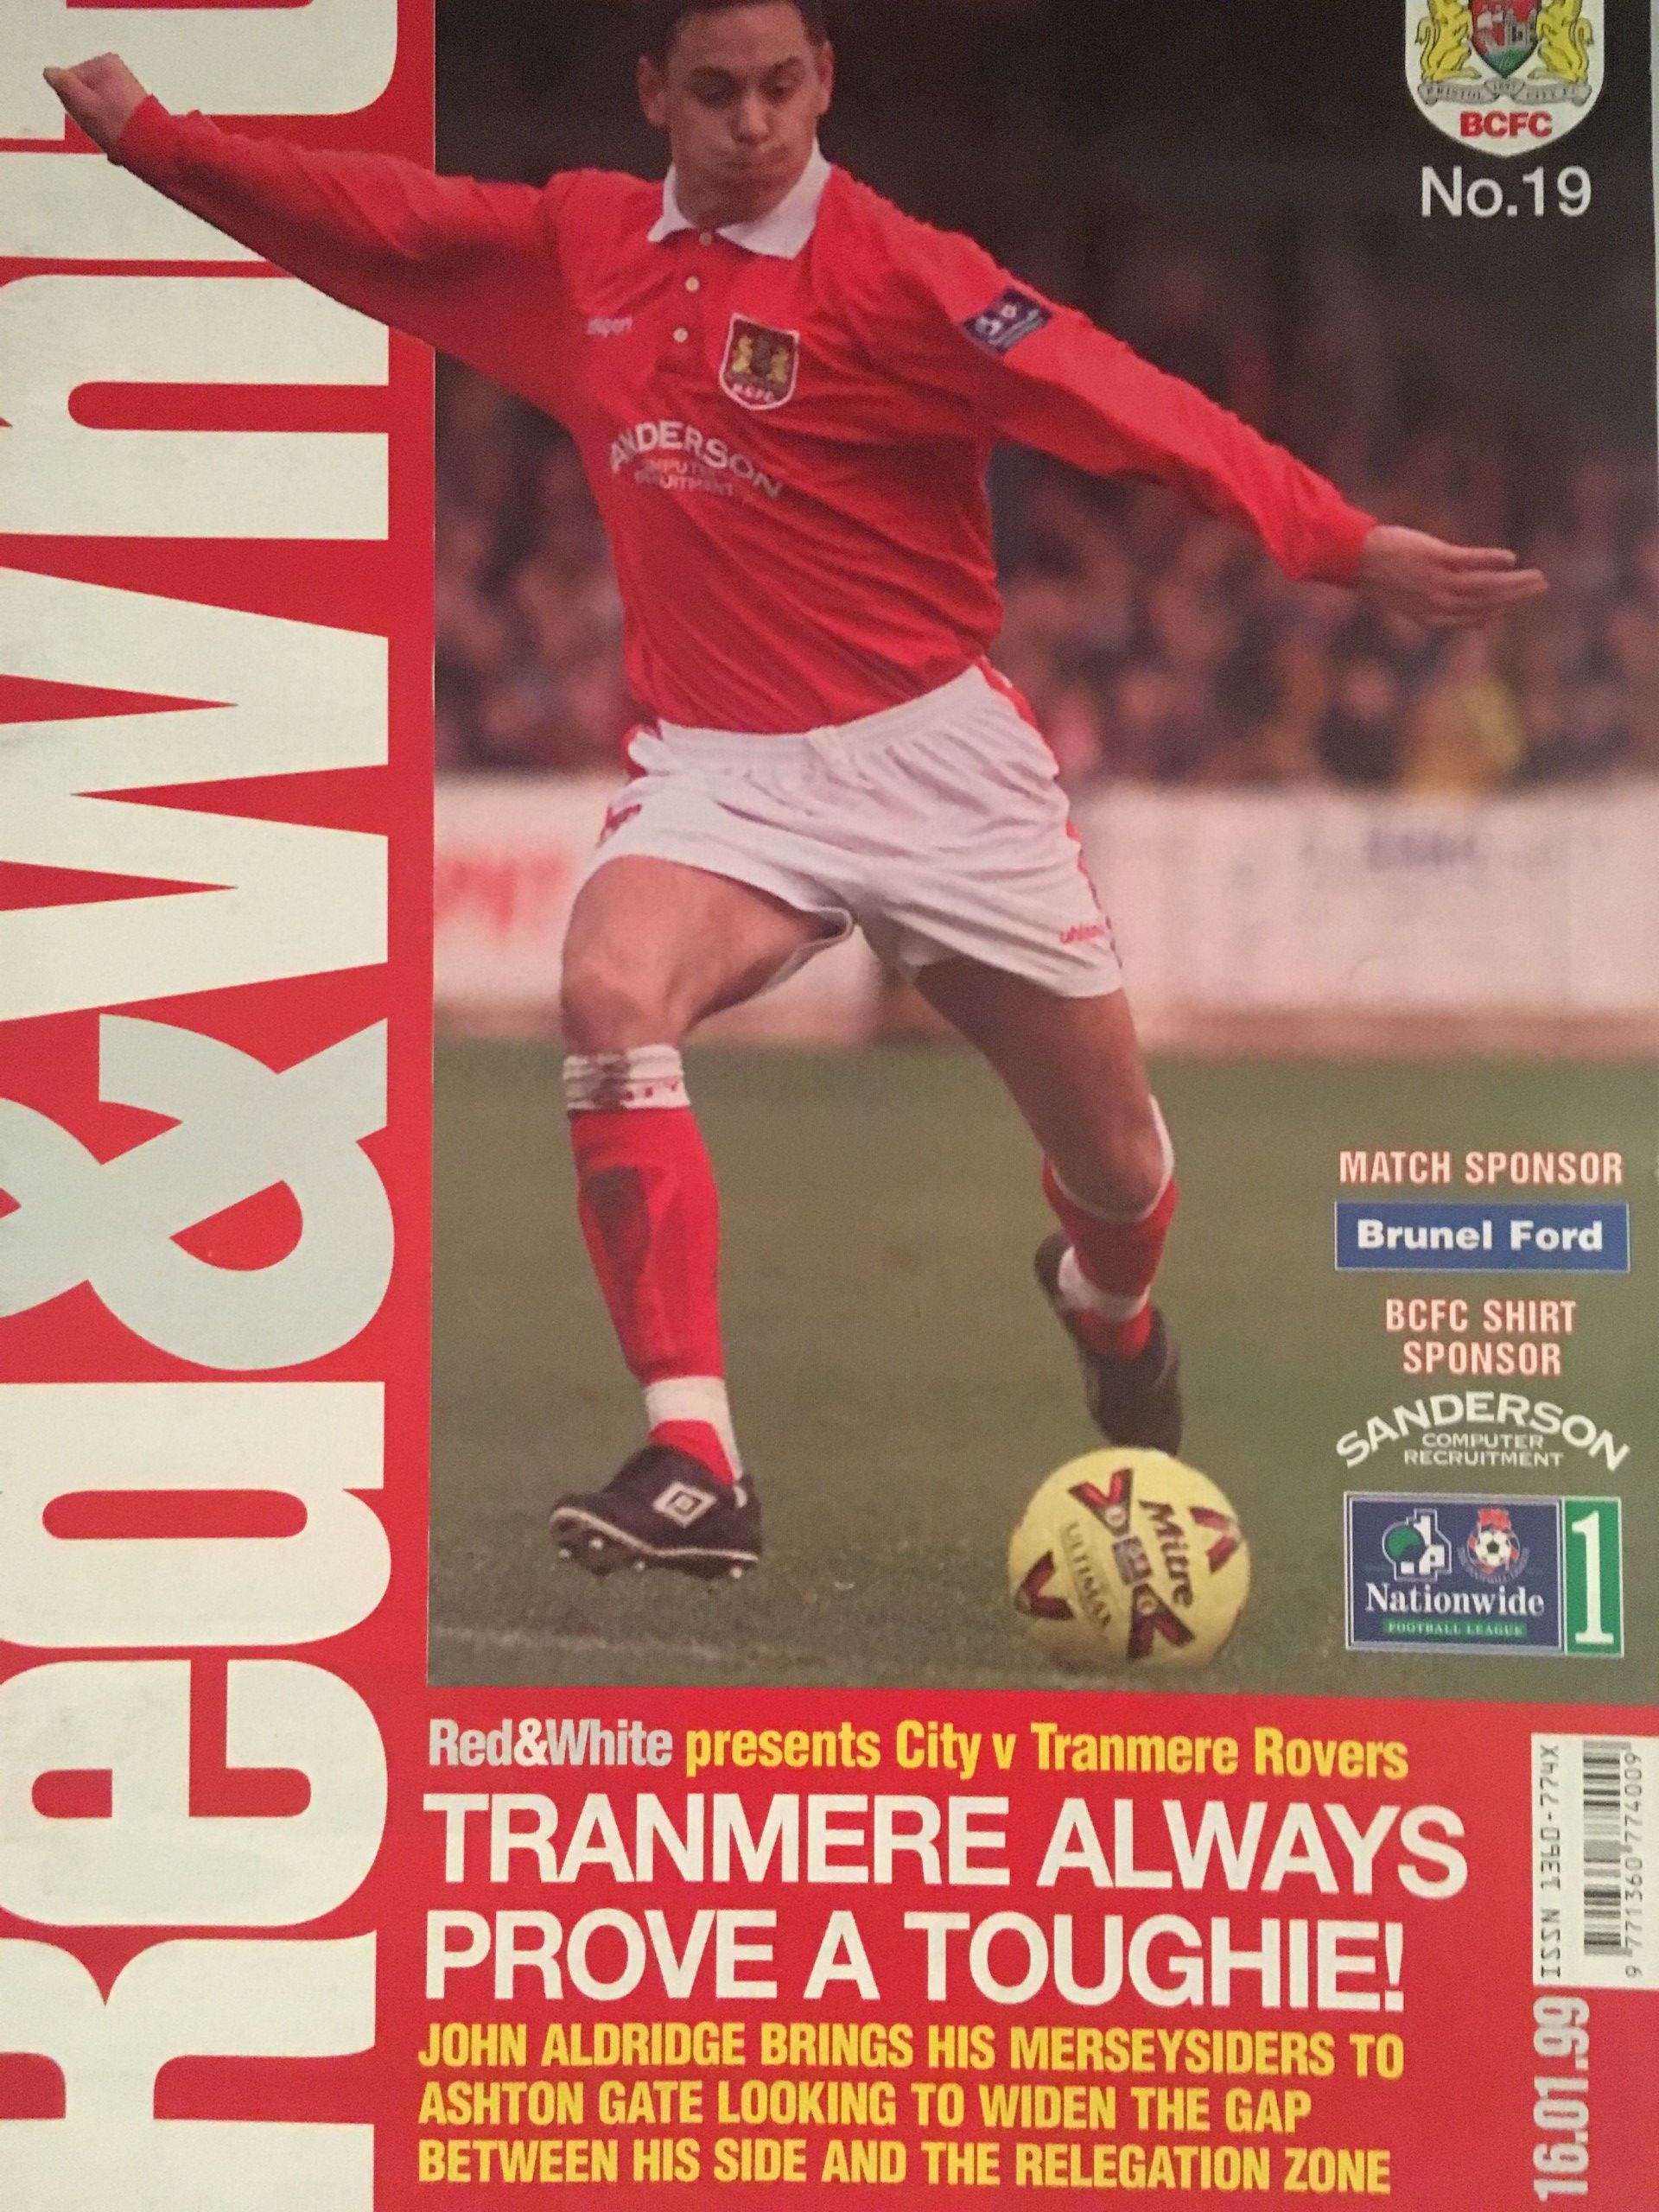 Bristol City v Tranmere Rovers 16-01-1999 Programme